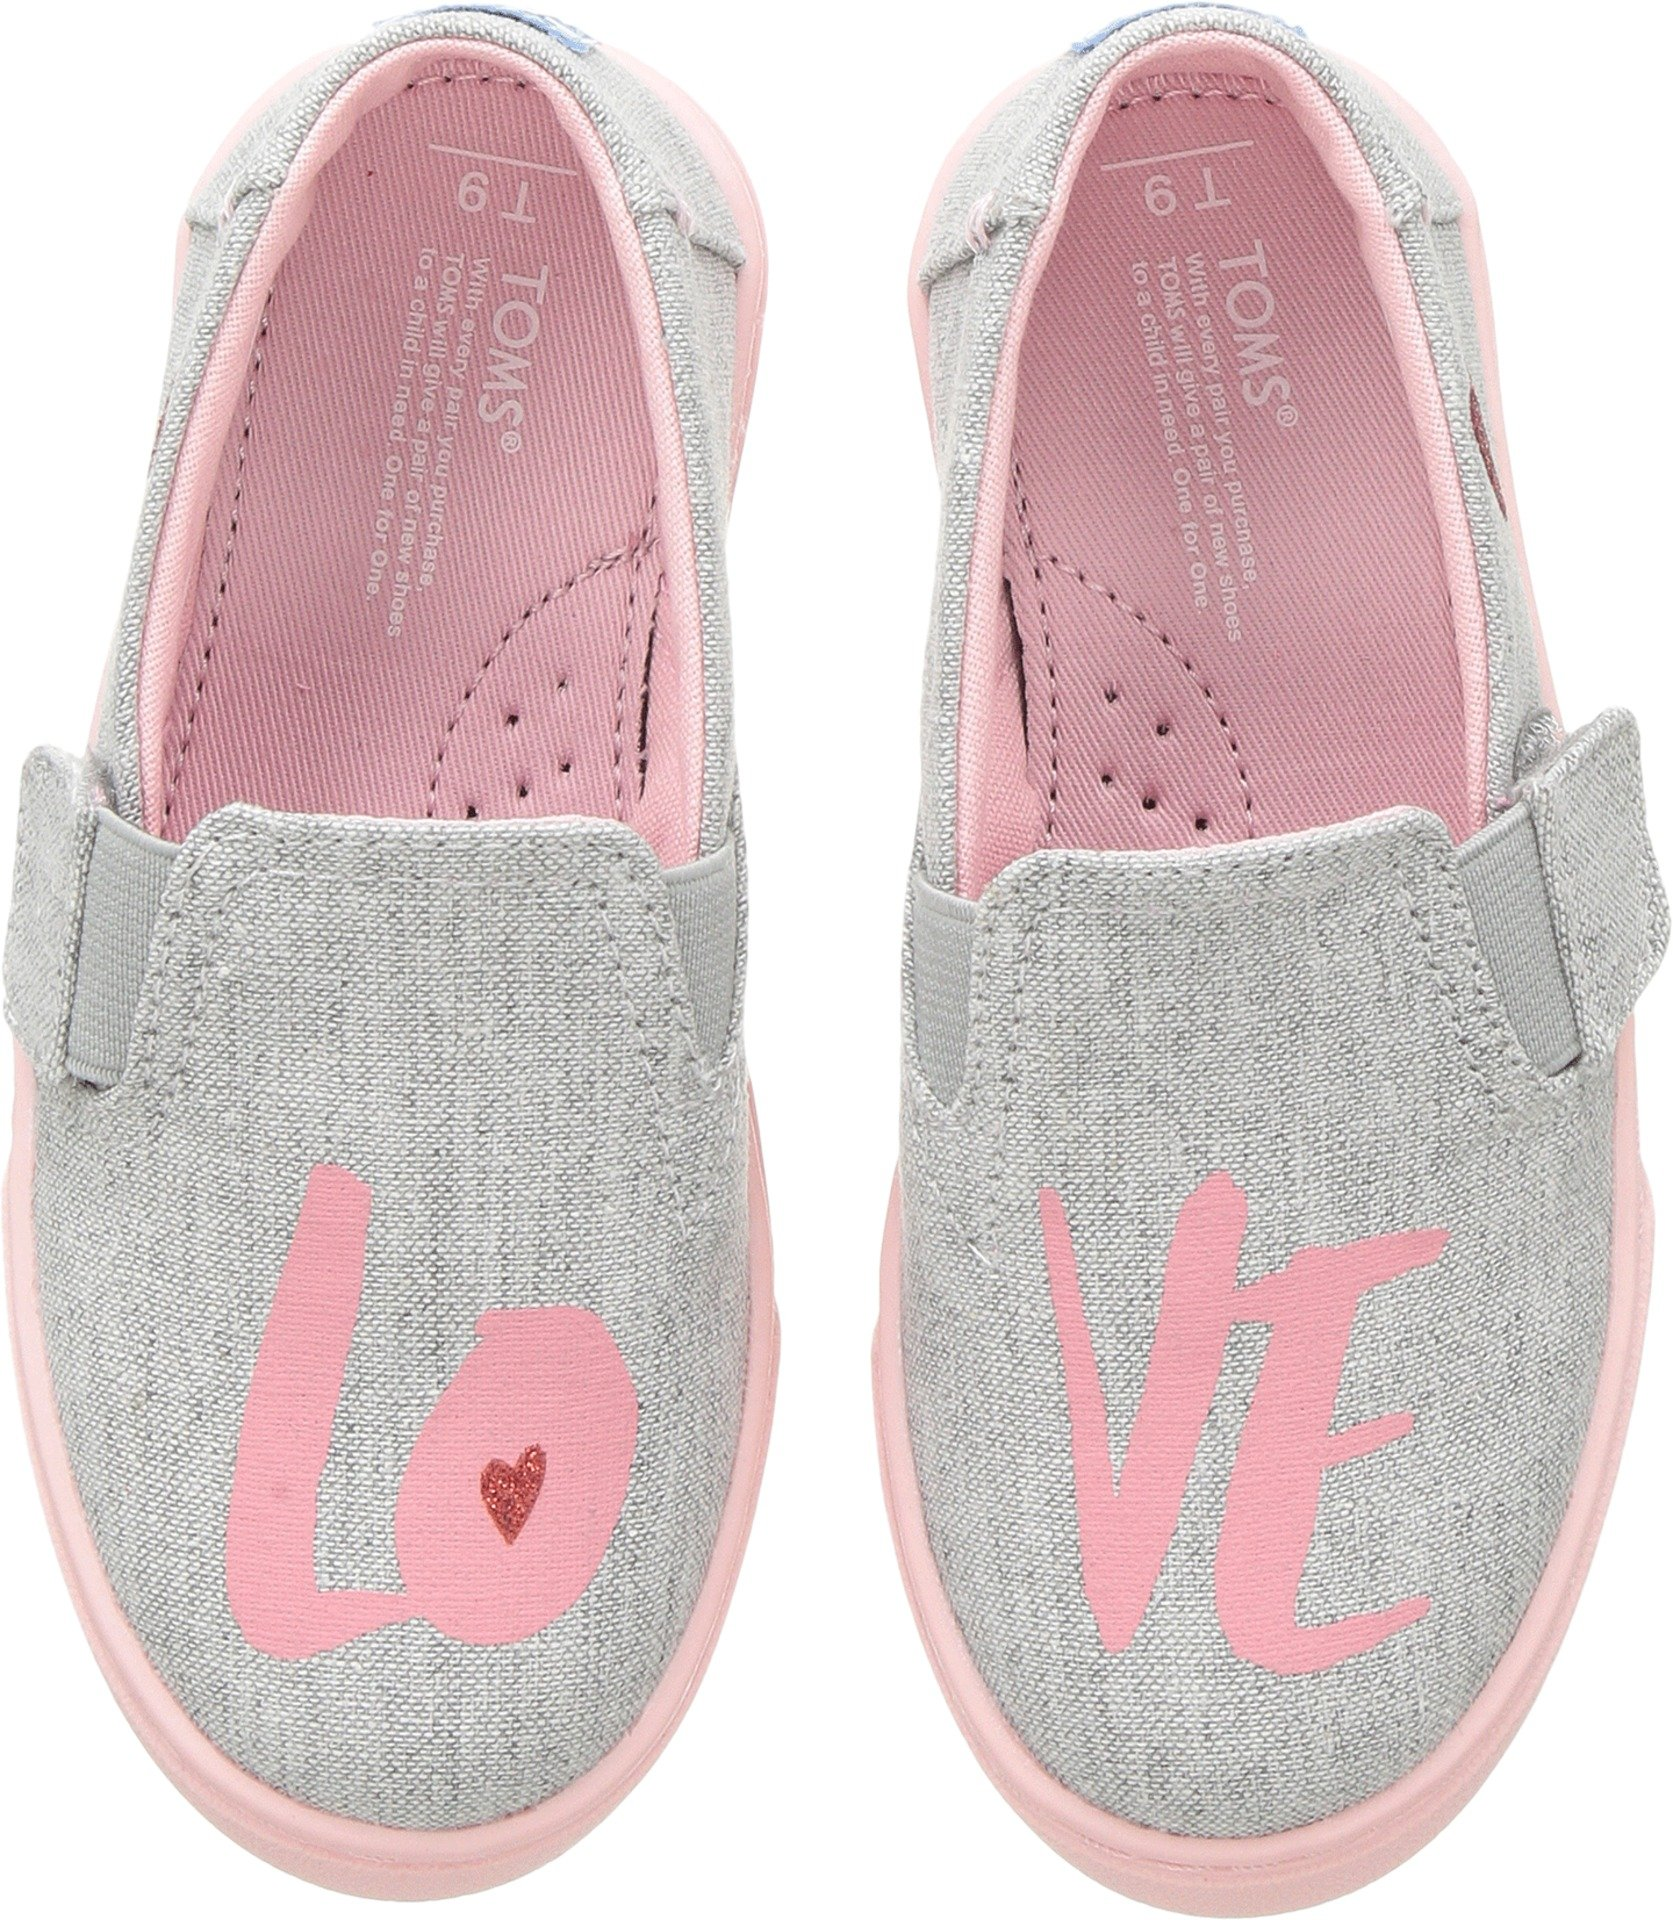 TOMS Tiny Luca Denim Chambray Slip-On, Size: 10 M US Toddler, Color Drizzle Grey Love